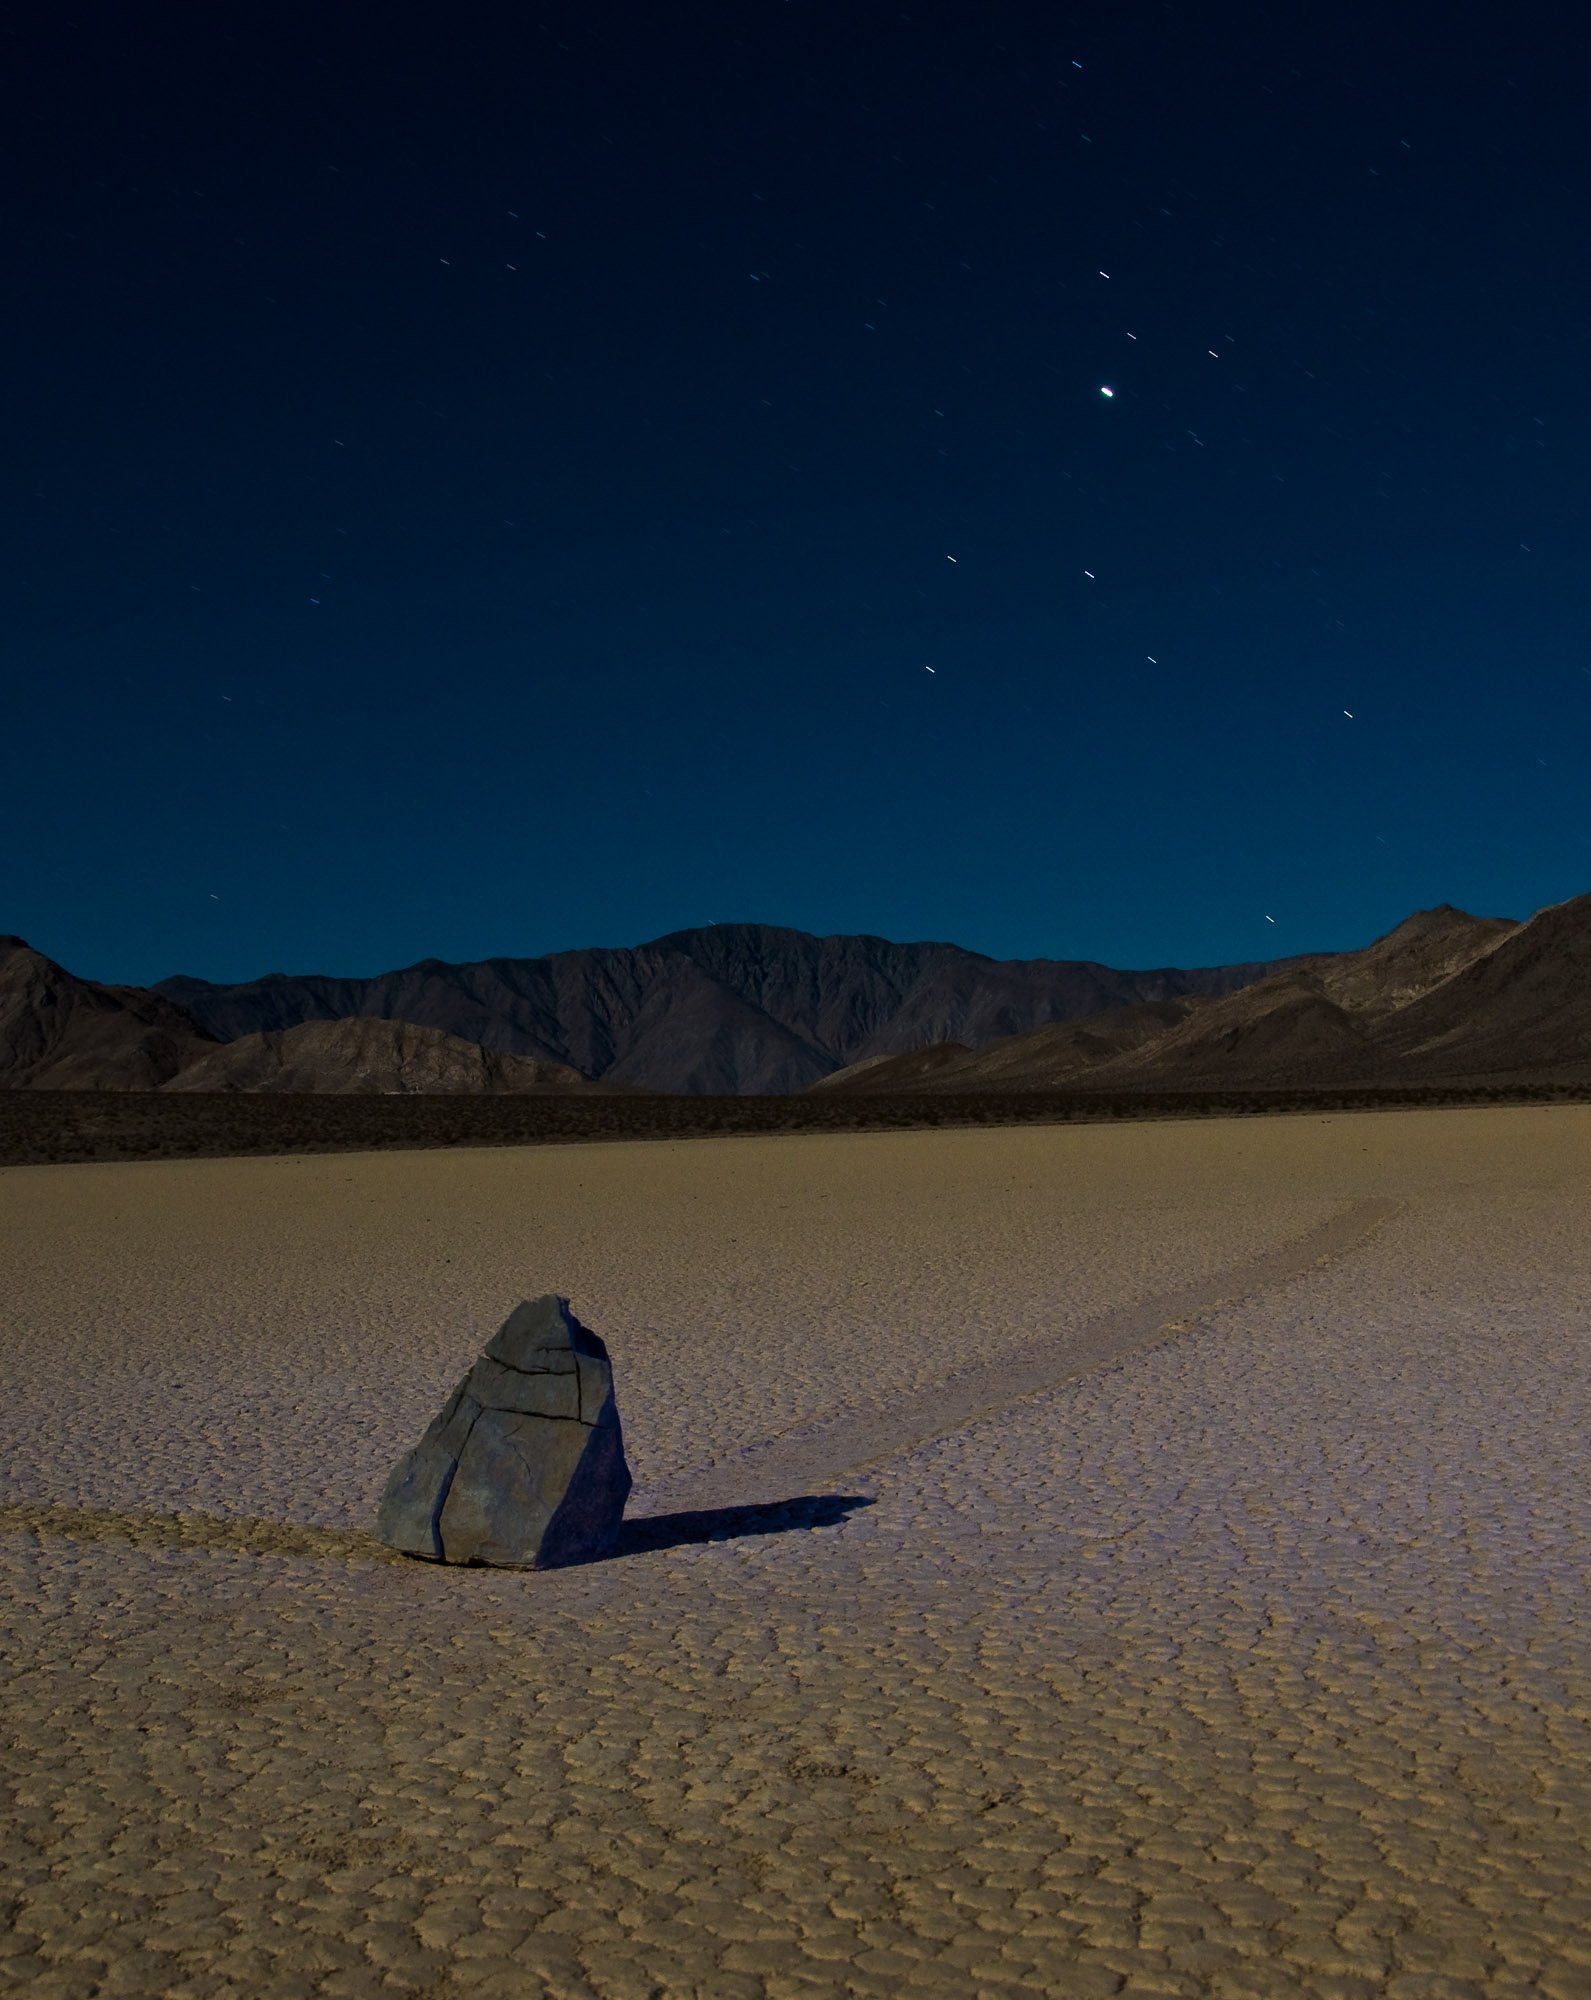 Sailing stone, Racetrack playa, Death Valley National Park, California